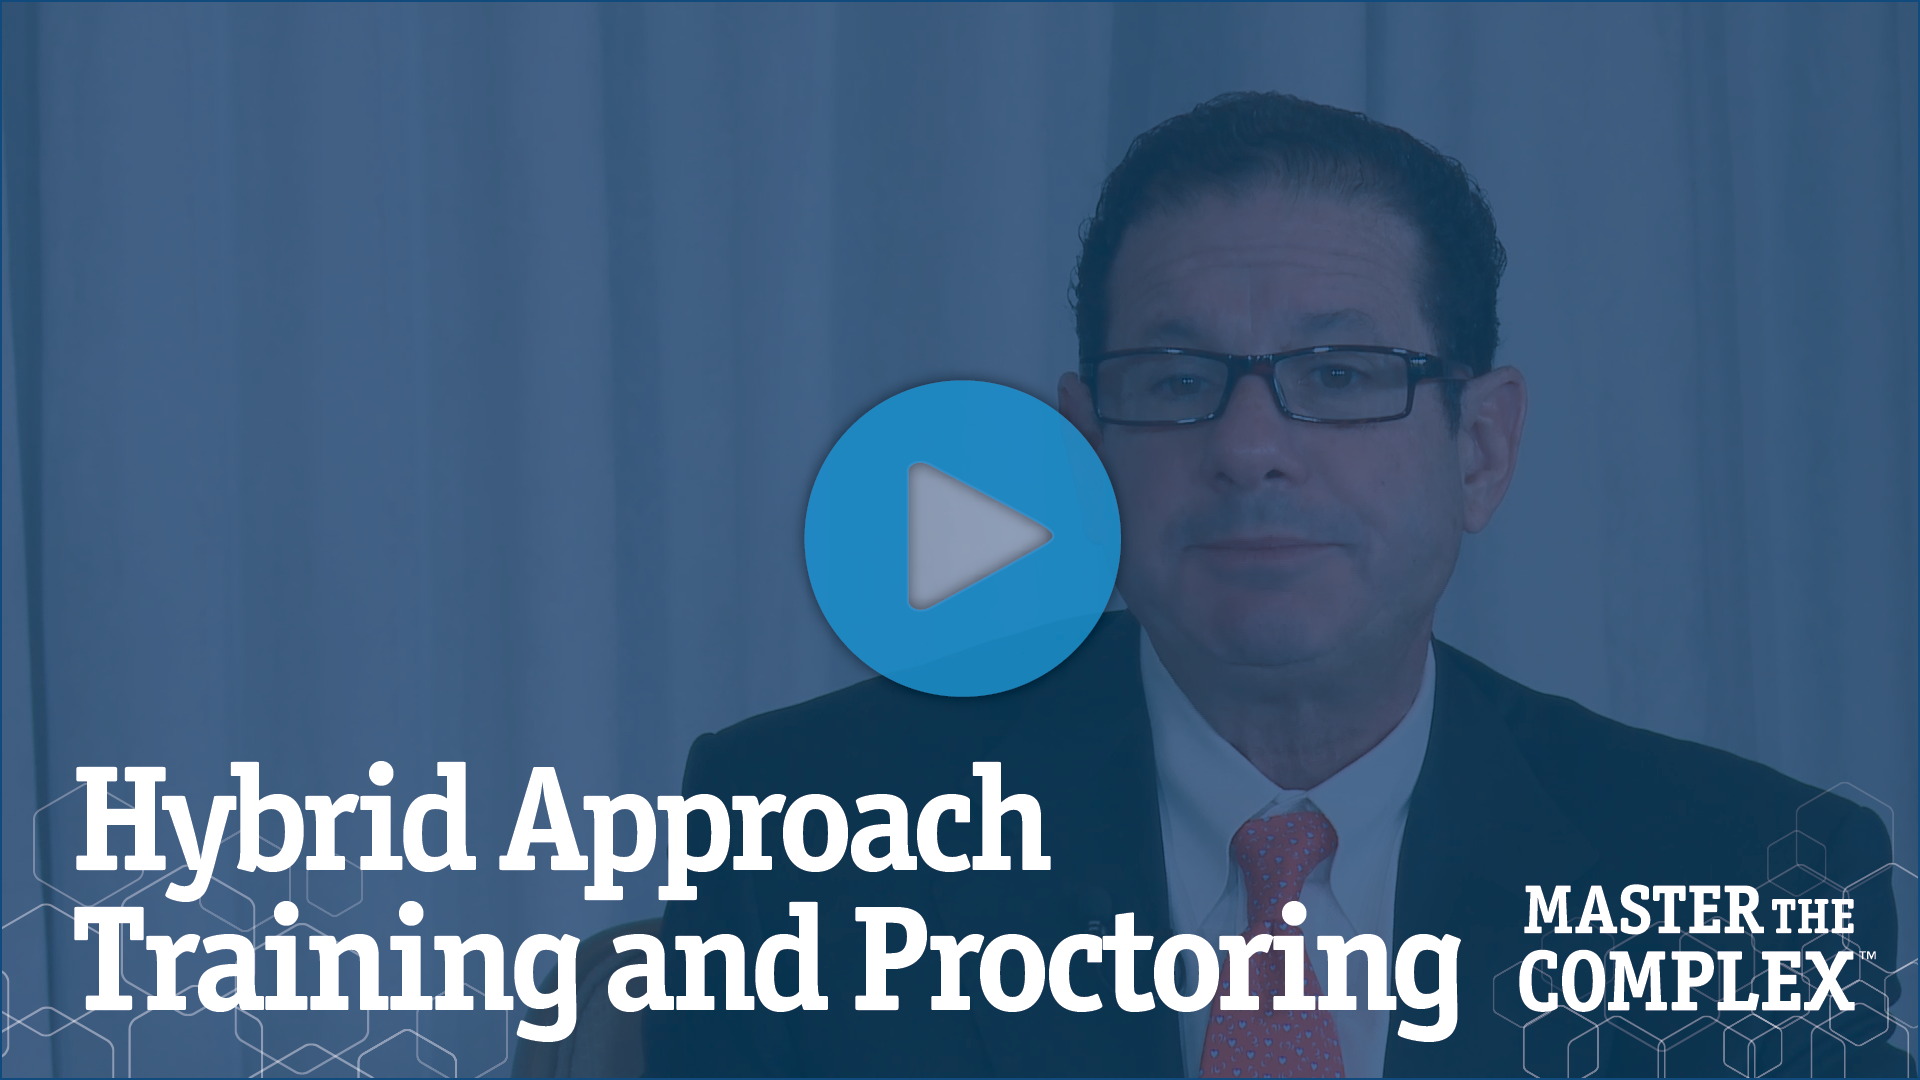 Hybrid Approach Training and Proctoring: With focused training and proctoring, do you think more patients can be treated with the hybrid approach CTO PCI program?